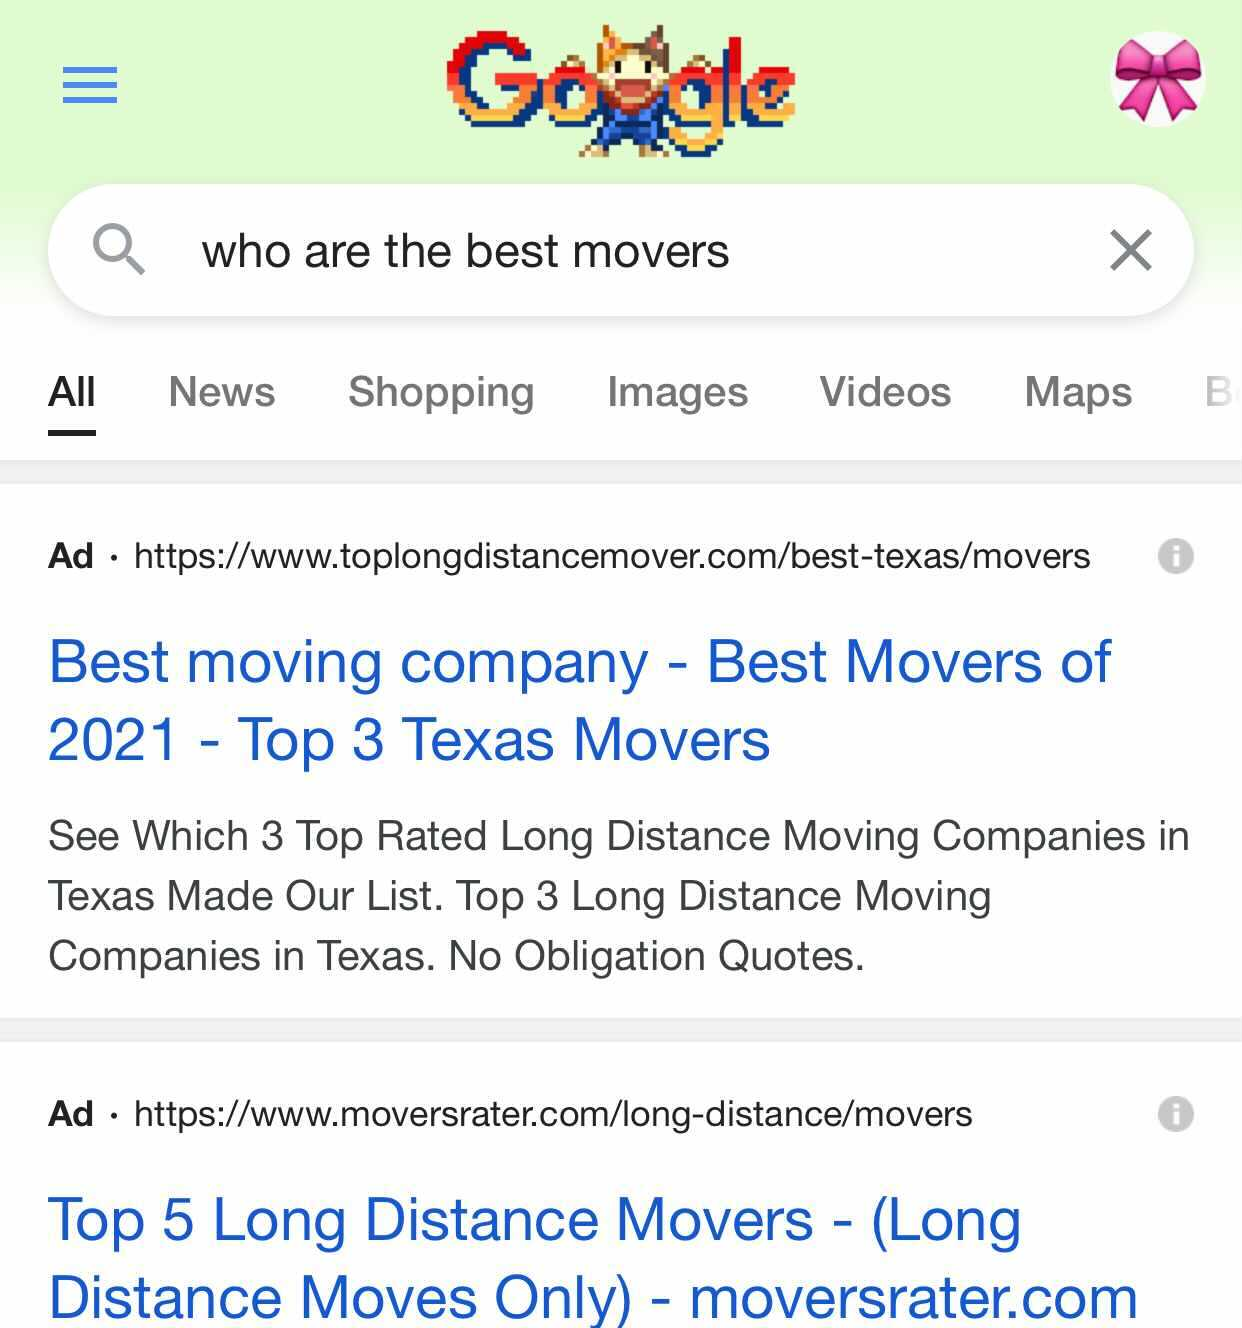 paid search advertising: Google example